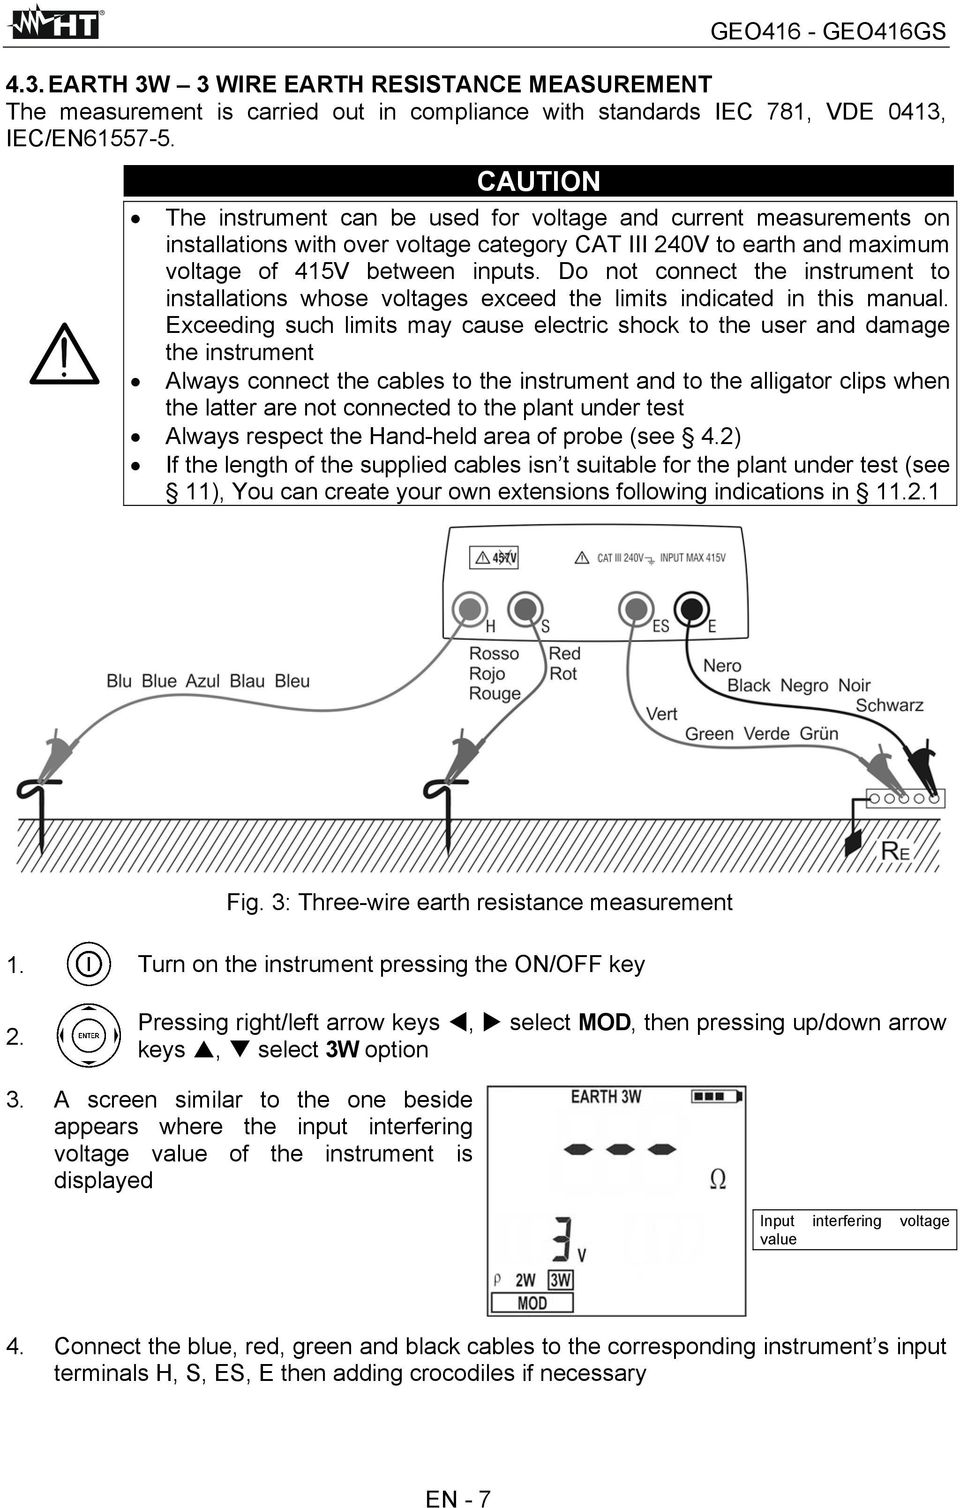 Do not connect the instrument to installations whose voltages exceed the limits indicated in this manual.